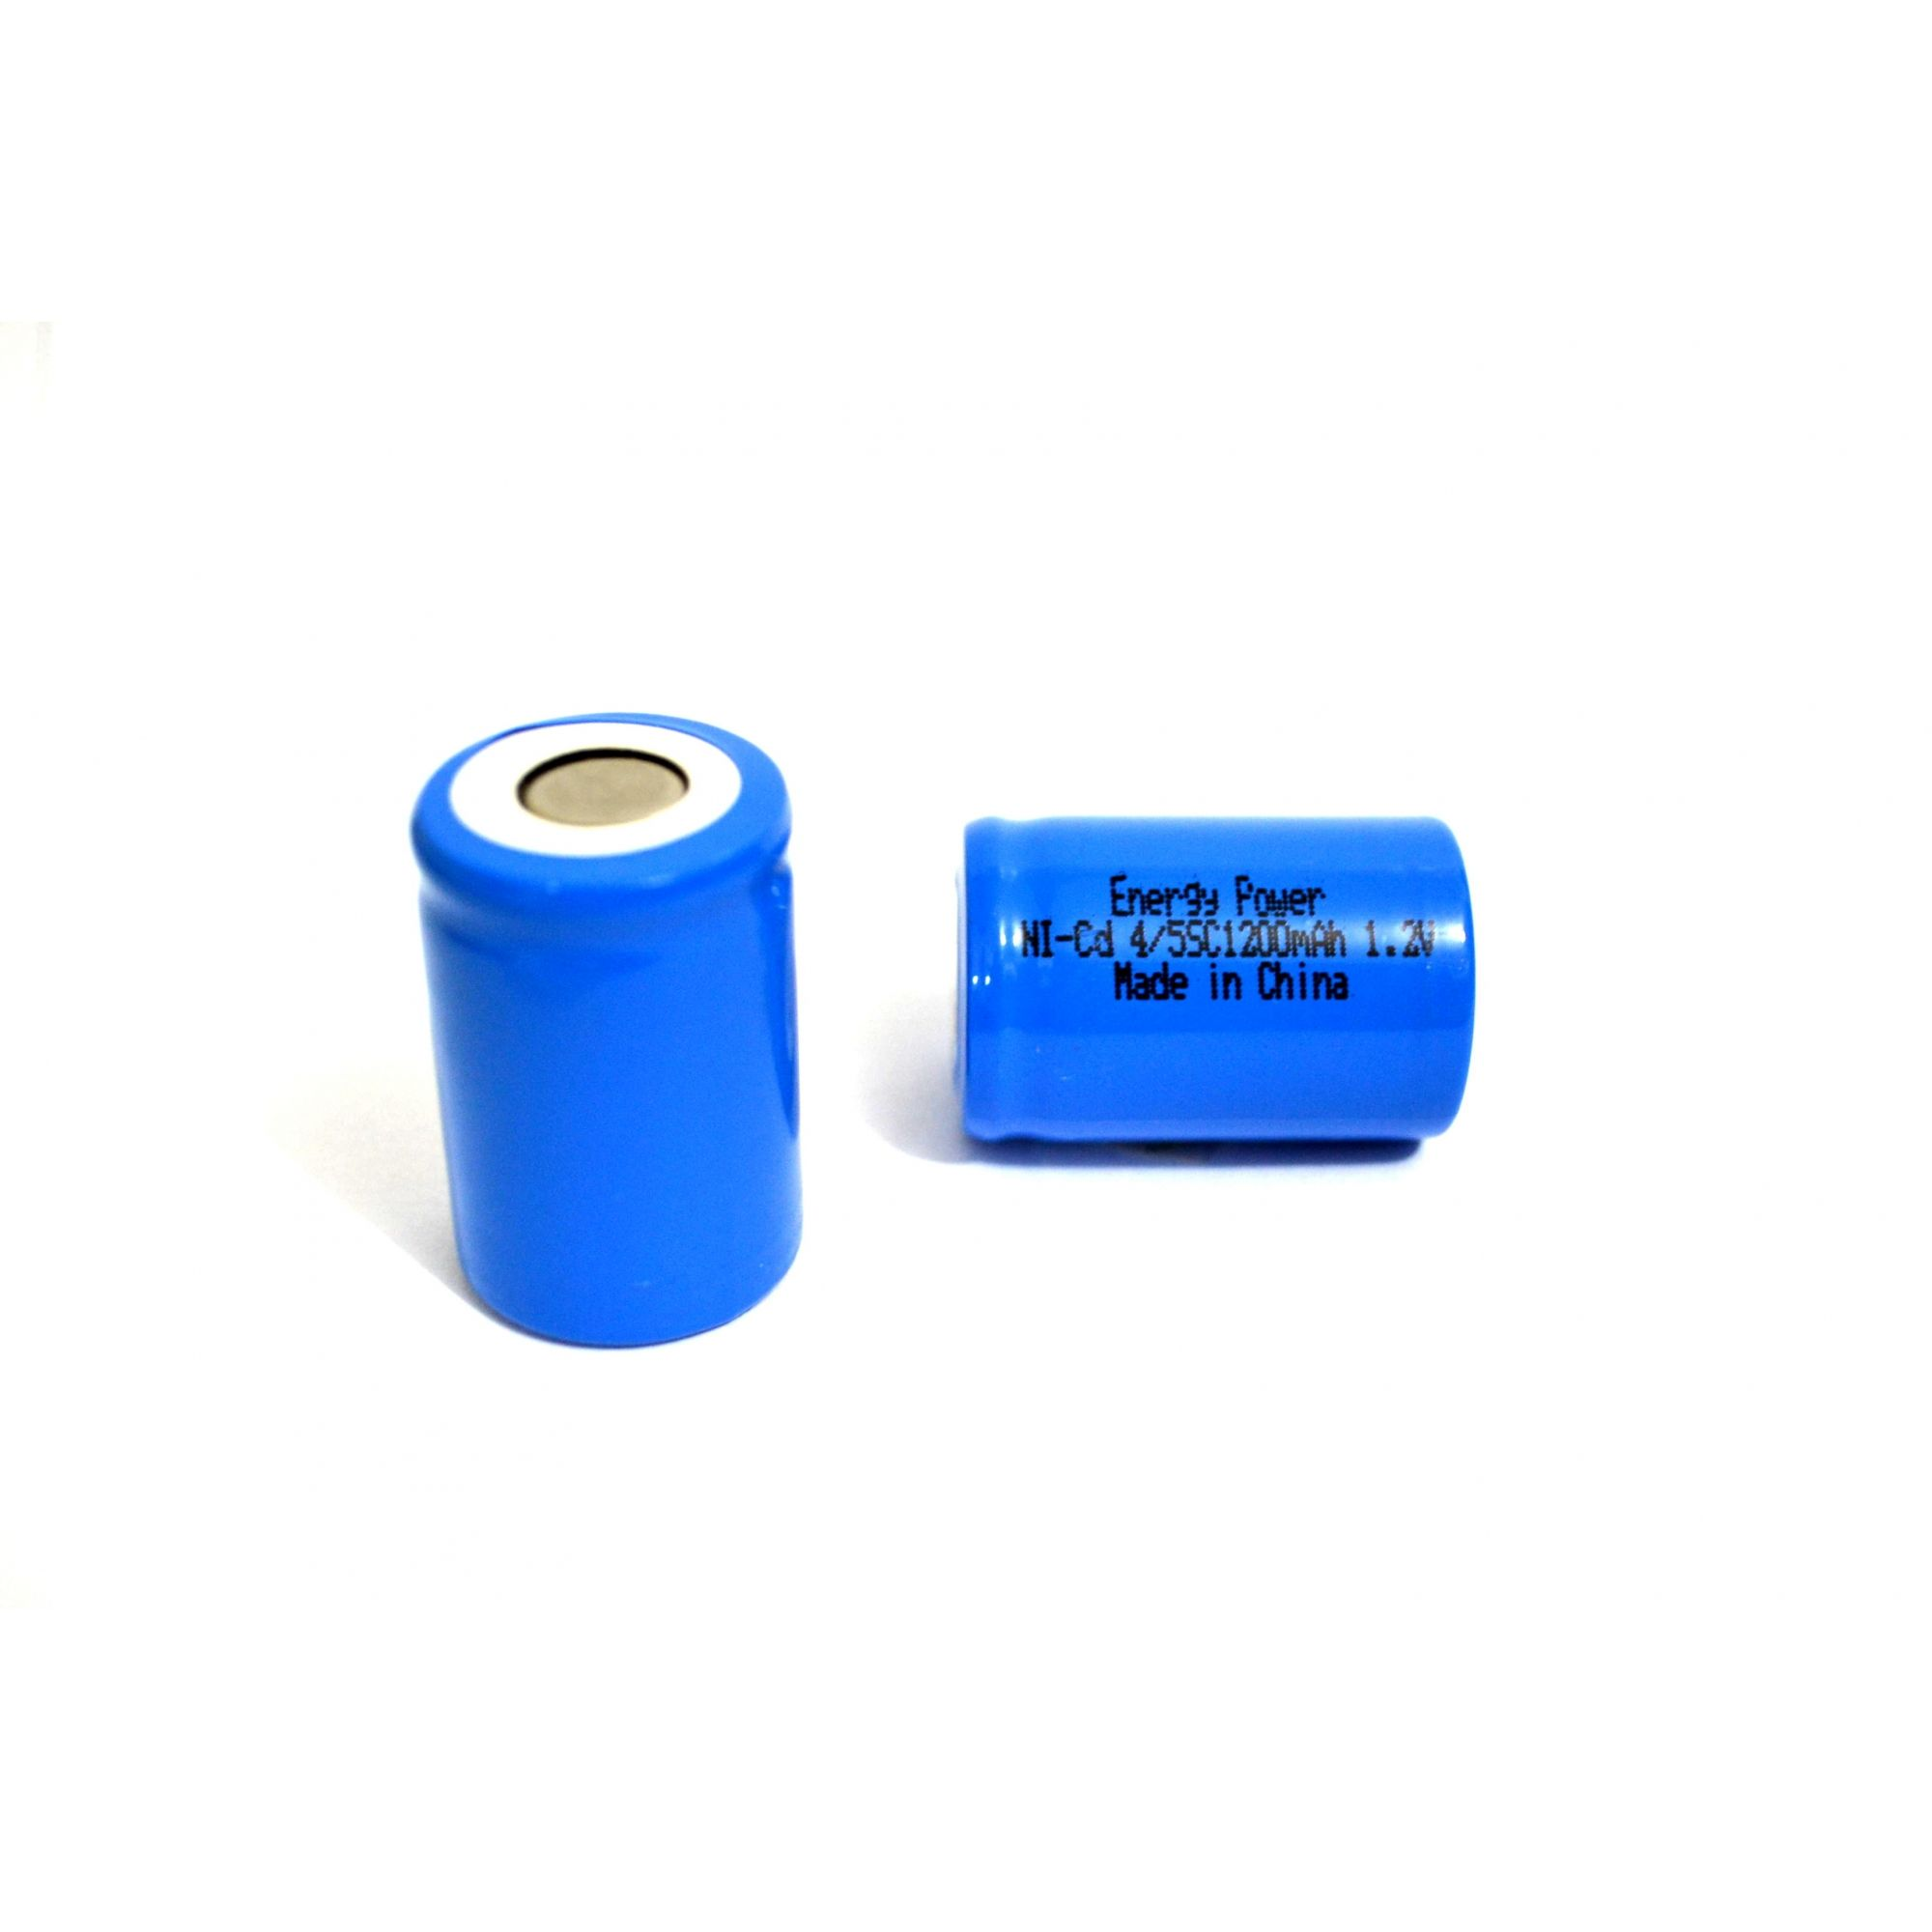 BATERIA ENERGY POWER 4/5SC 1200MAH 1,2V NI-CD